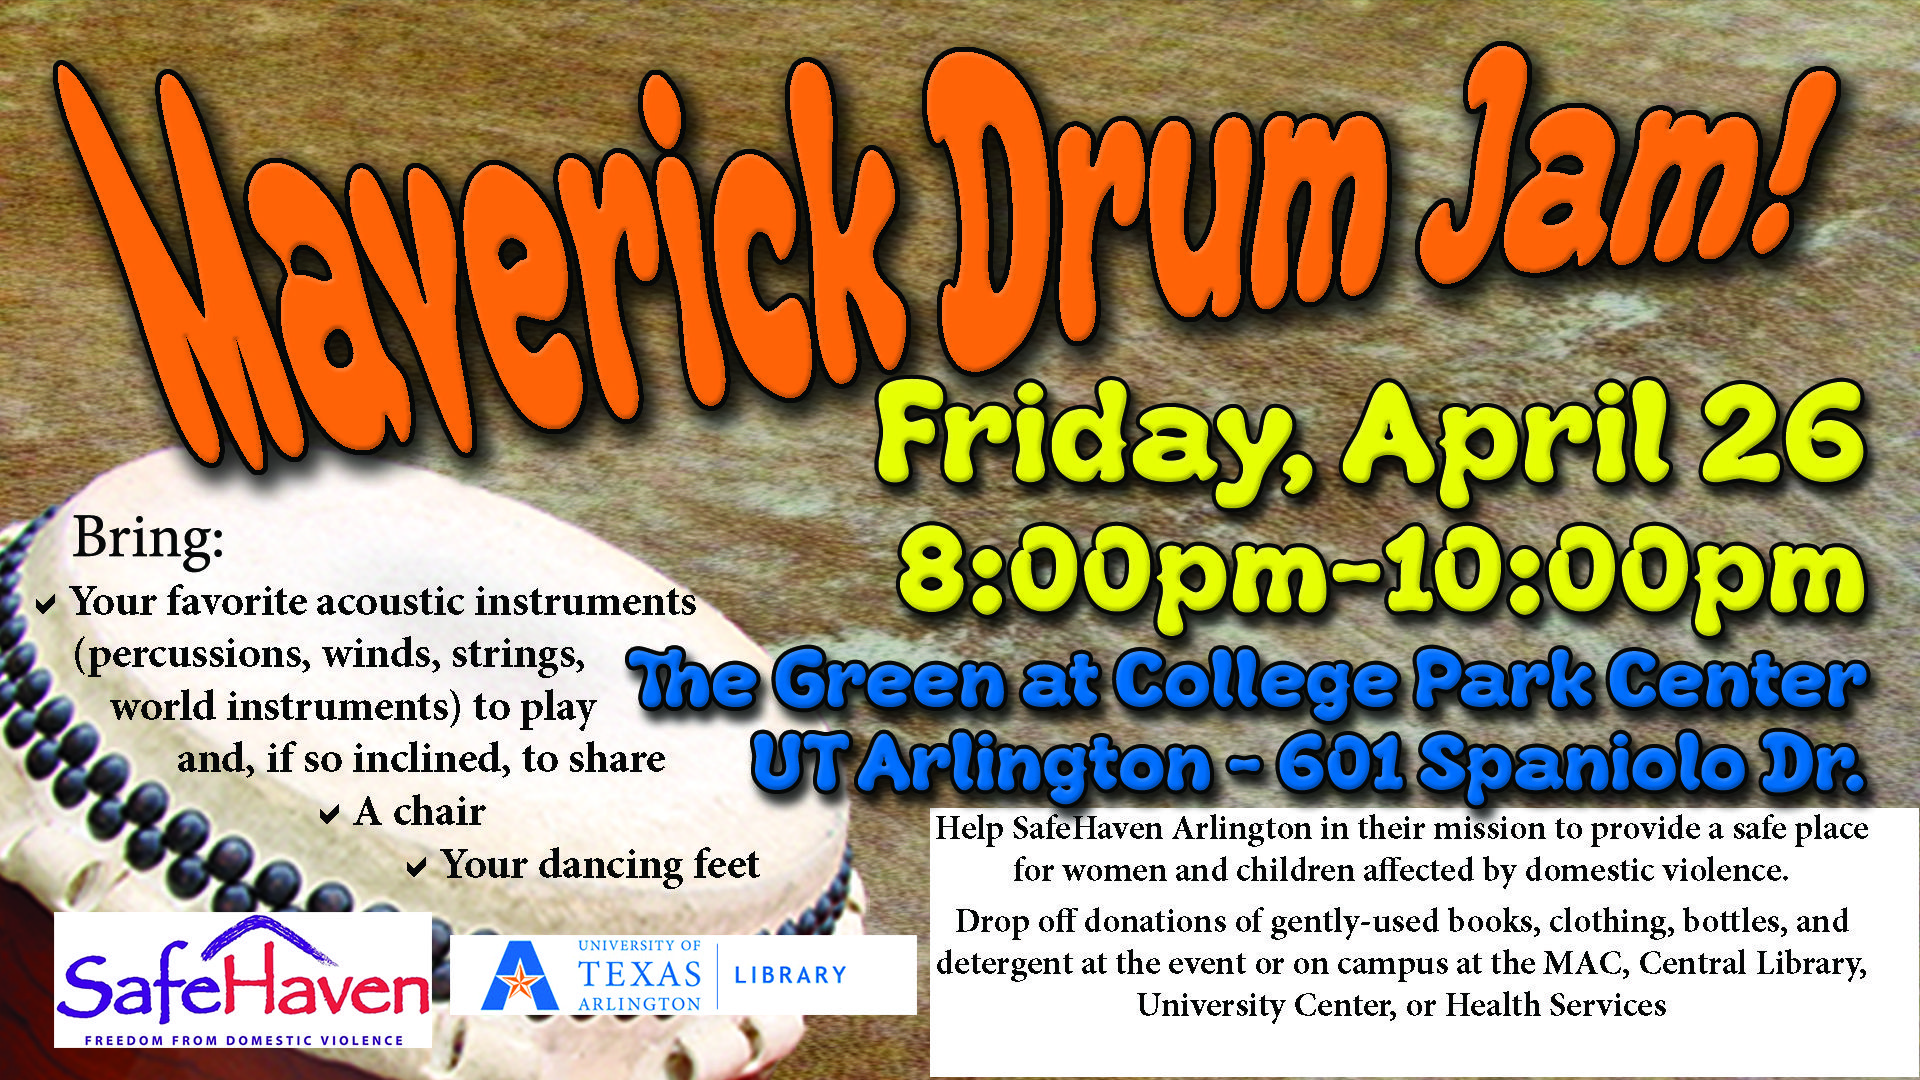 Maverick Drum Jam Friday April 26 2013 From 8 00 P M To 10 00 P M On The Green At College Park At Ut Arlington Located At Arlington College Park 10 Things